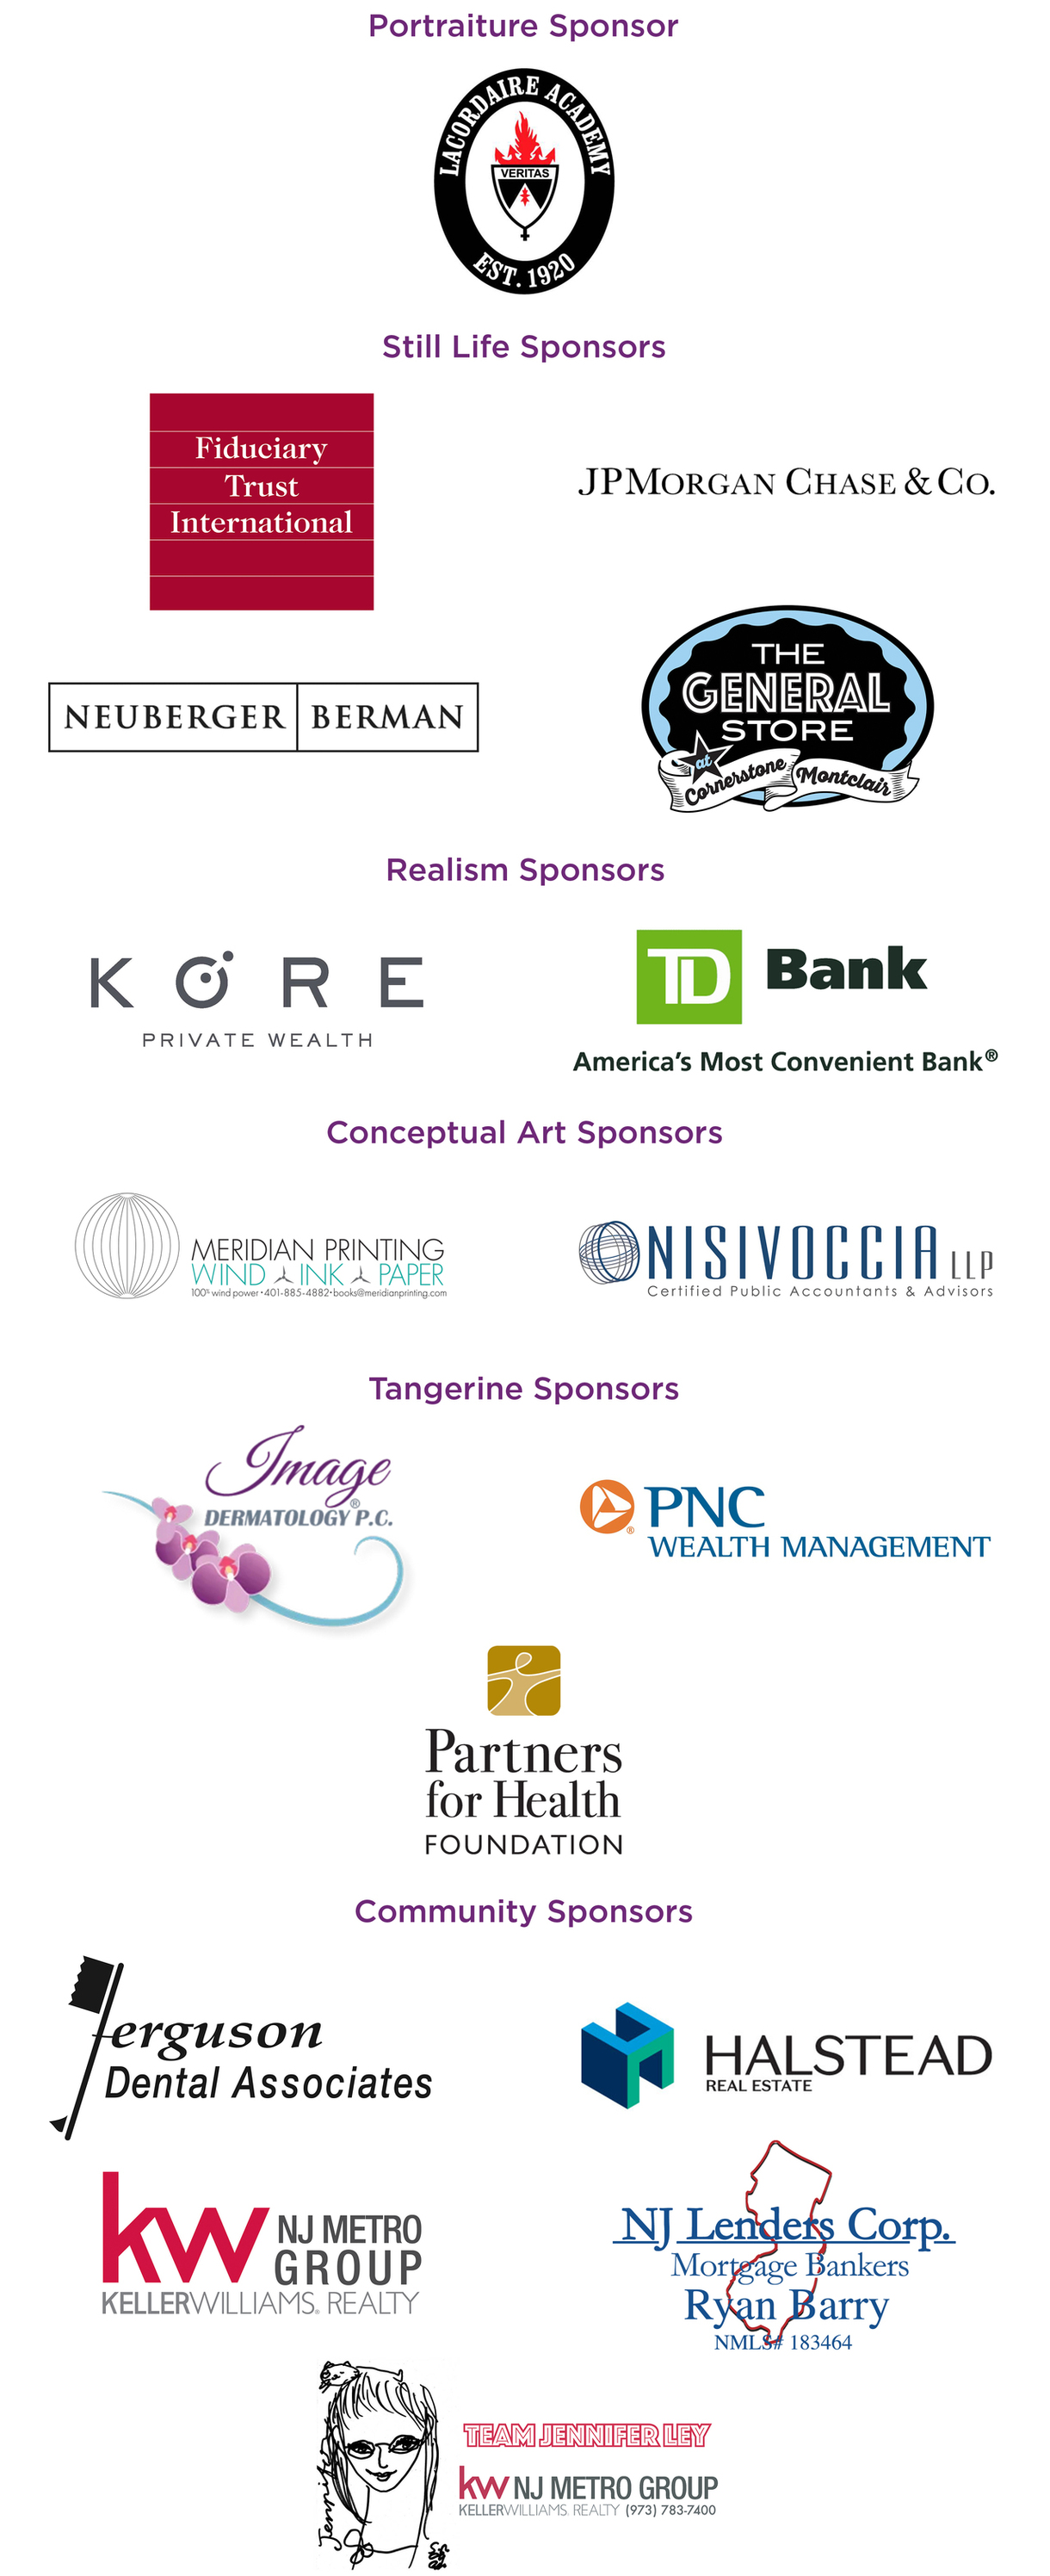 Te art party sponsor logos. These sponsors are the same as those listed in text on this page.